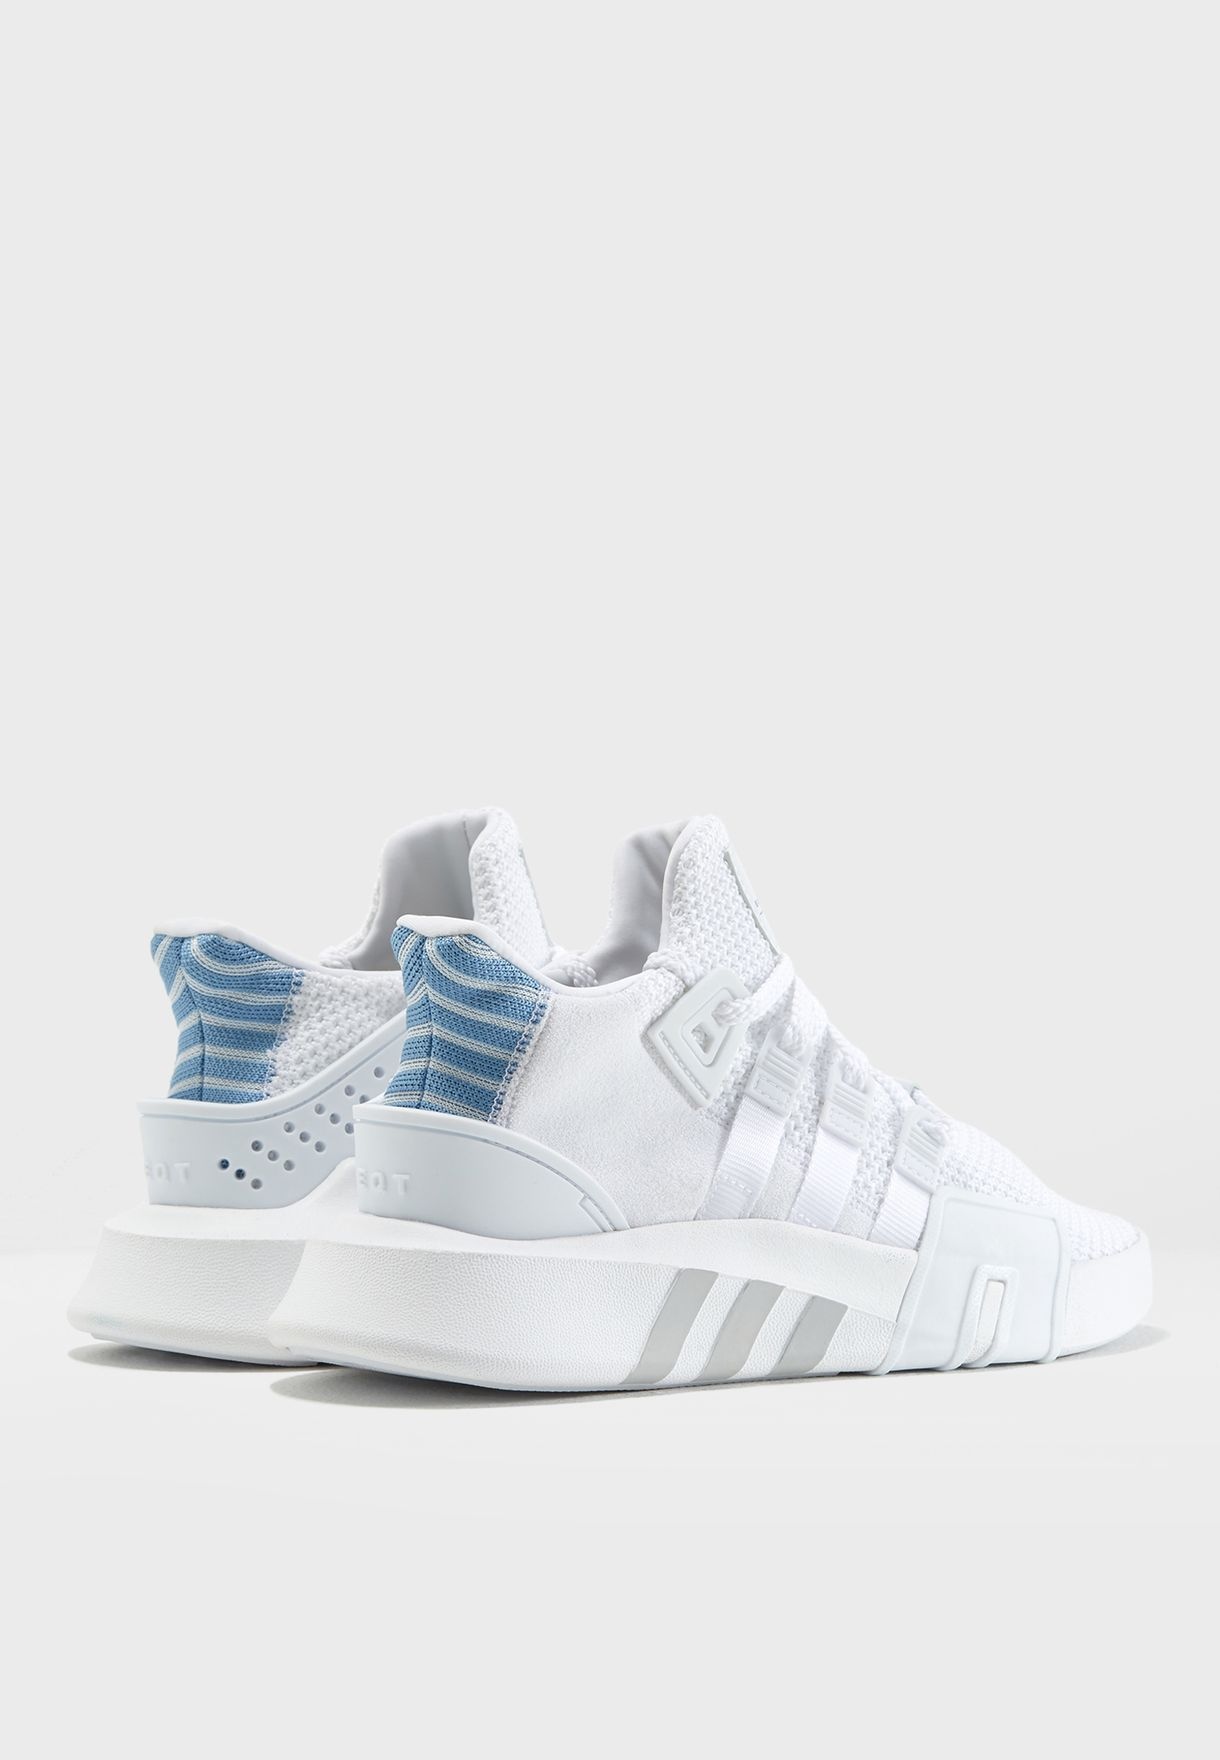 Shop adidas Originals white EQT Bask ADV AC7354 for Women in ... 427bcfc64